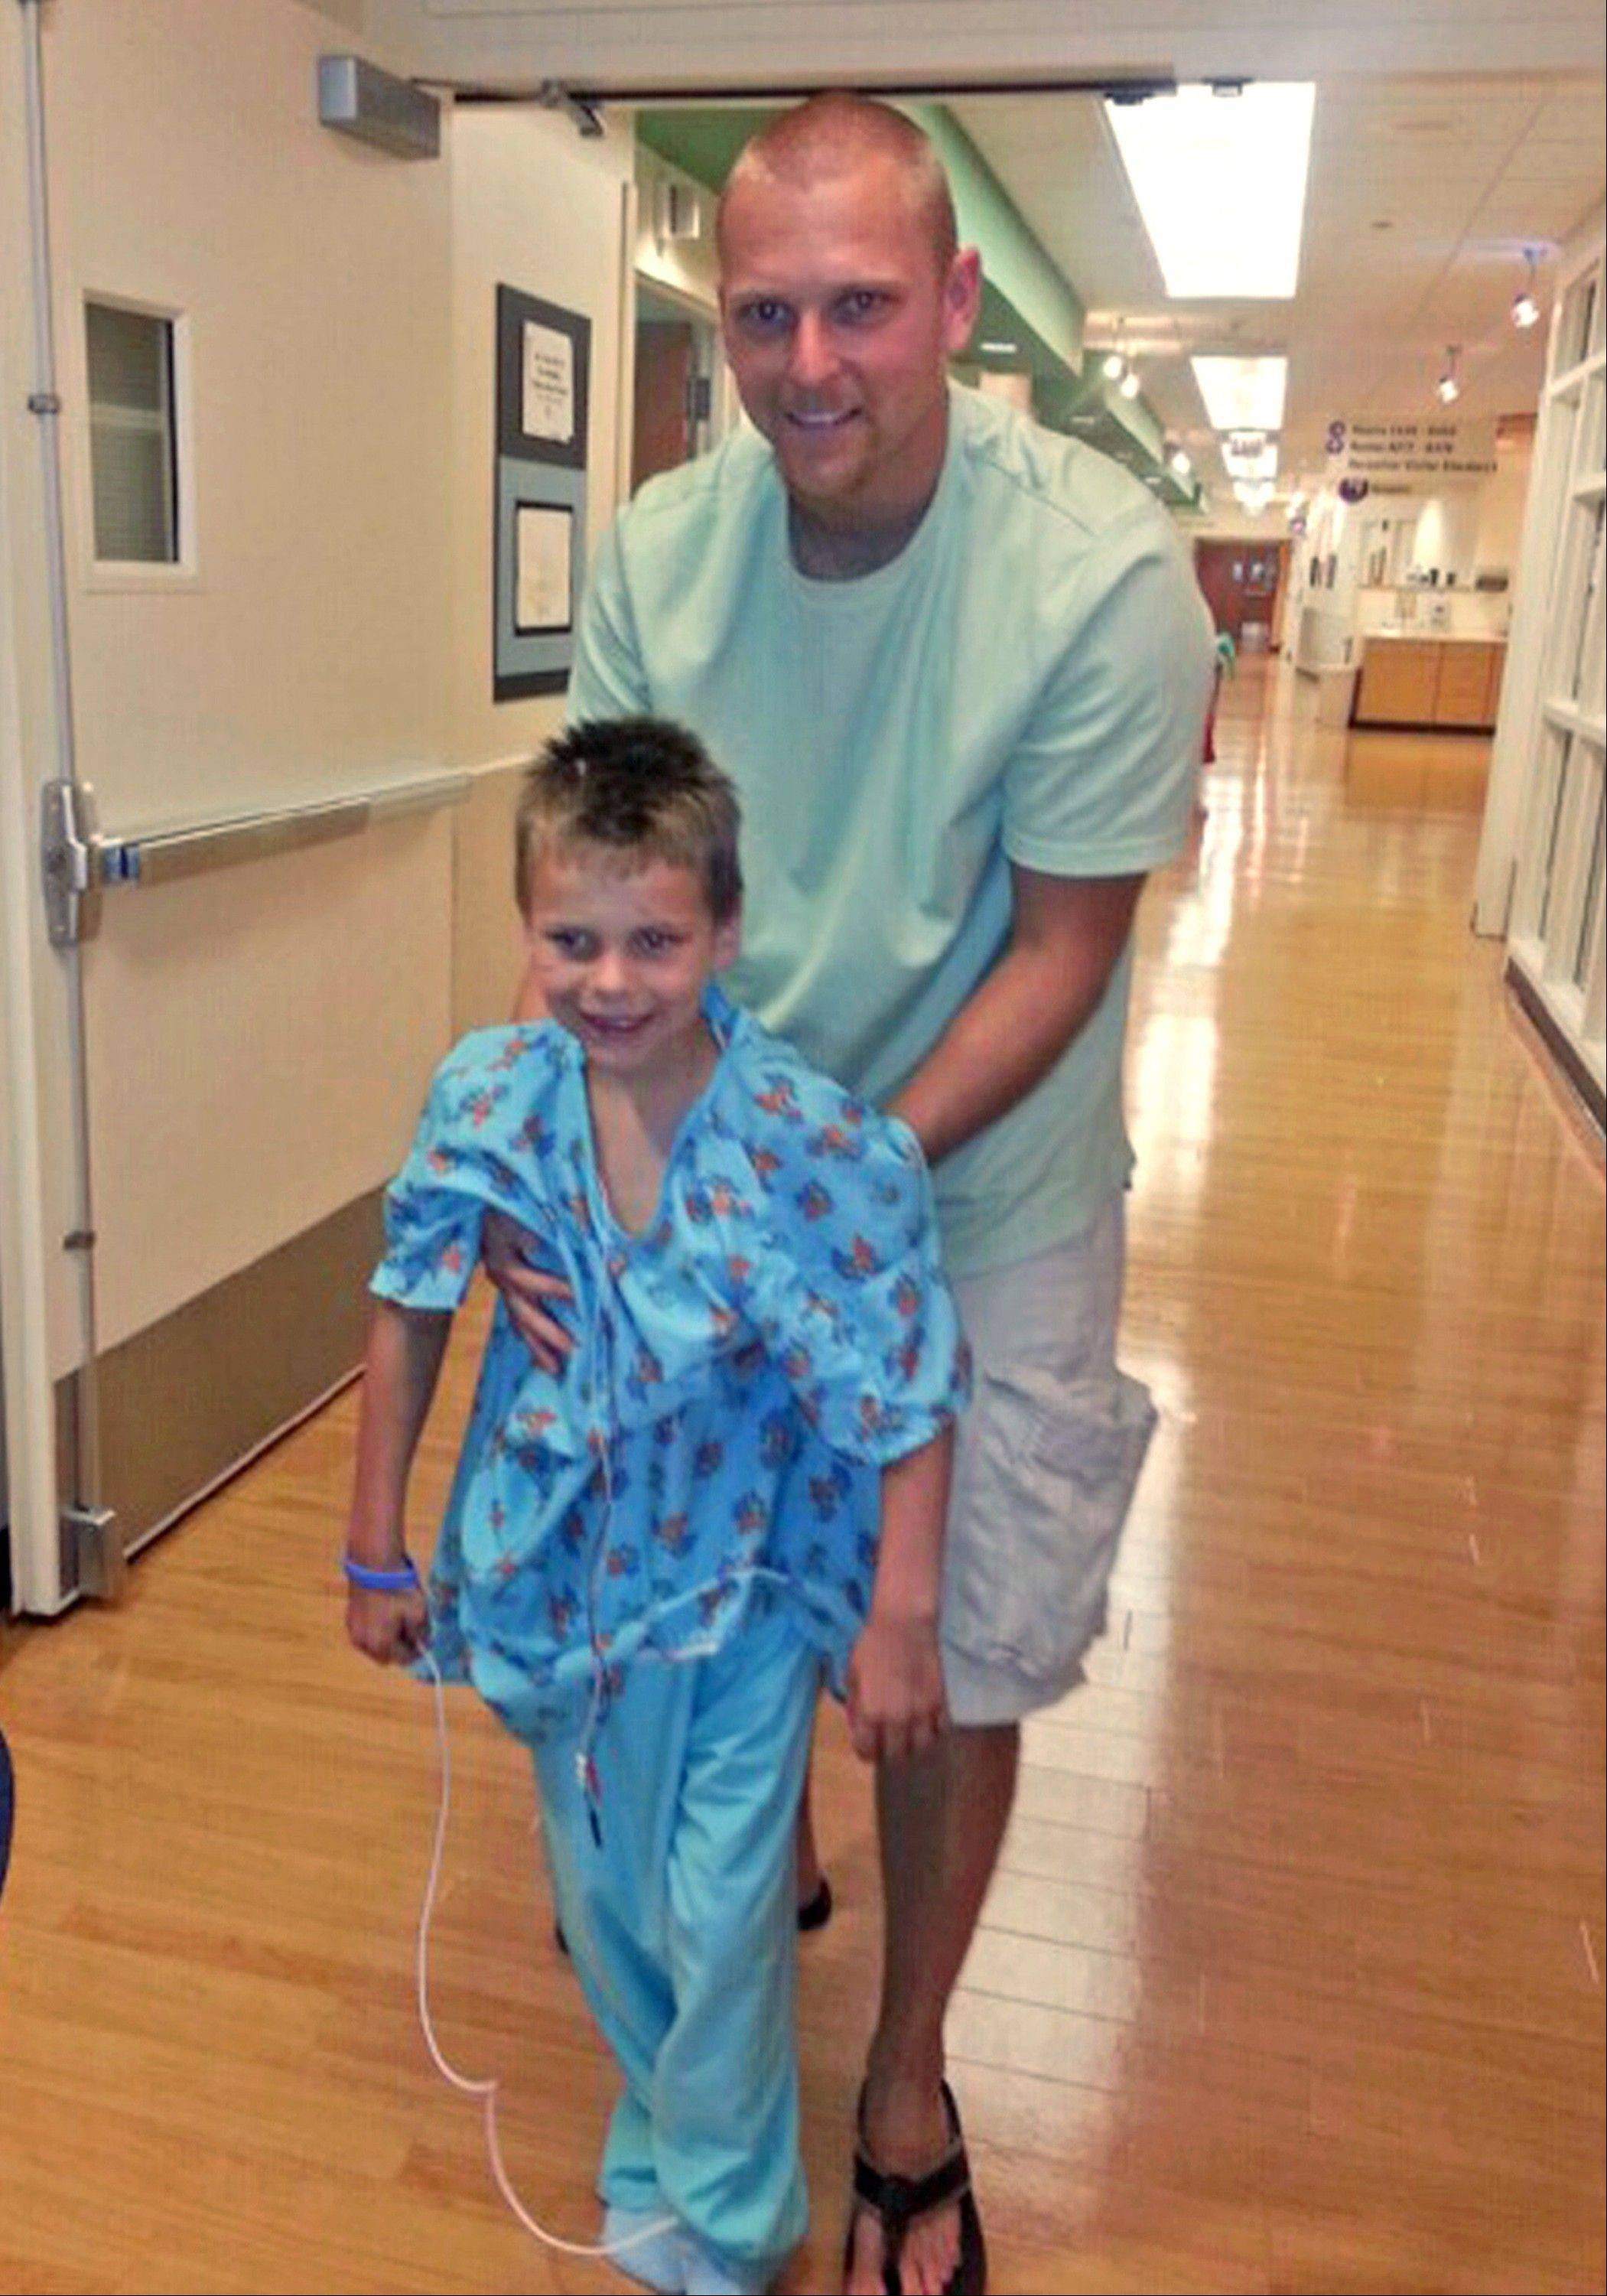 Nathan Woessner walks with his father, Greg, at Comer Children's Hospital in Chicago.